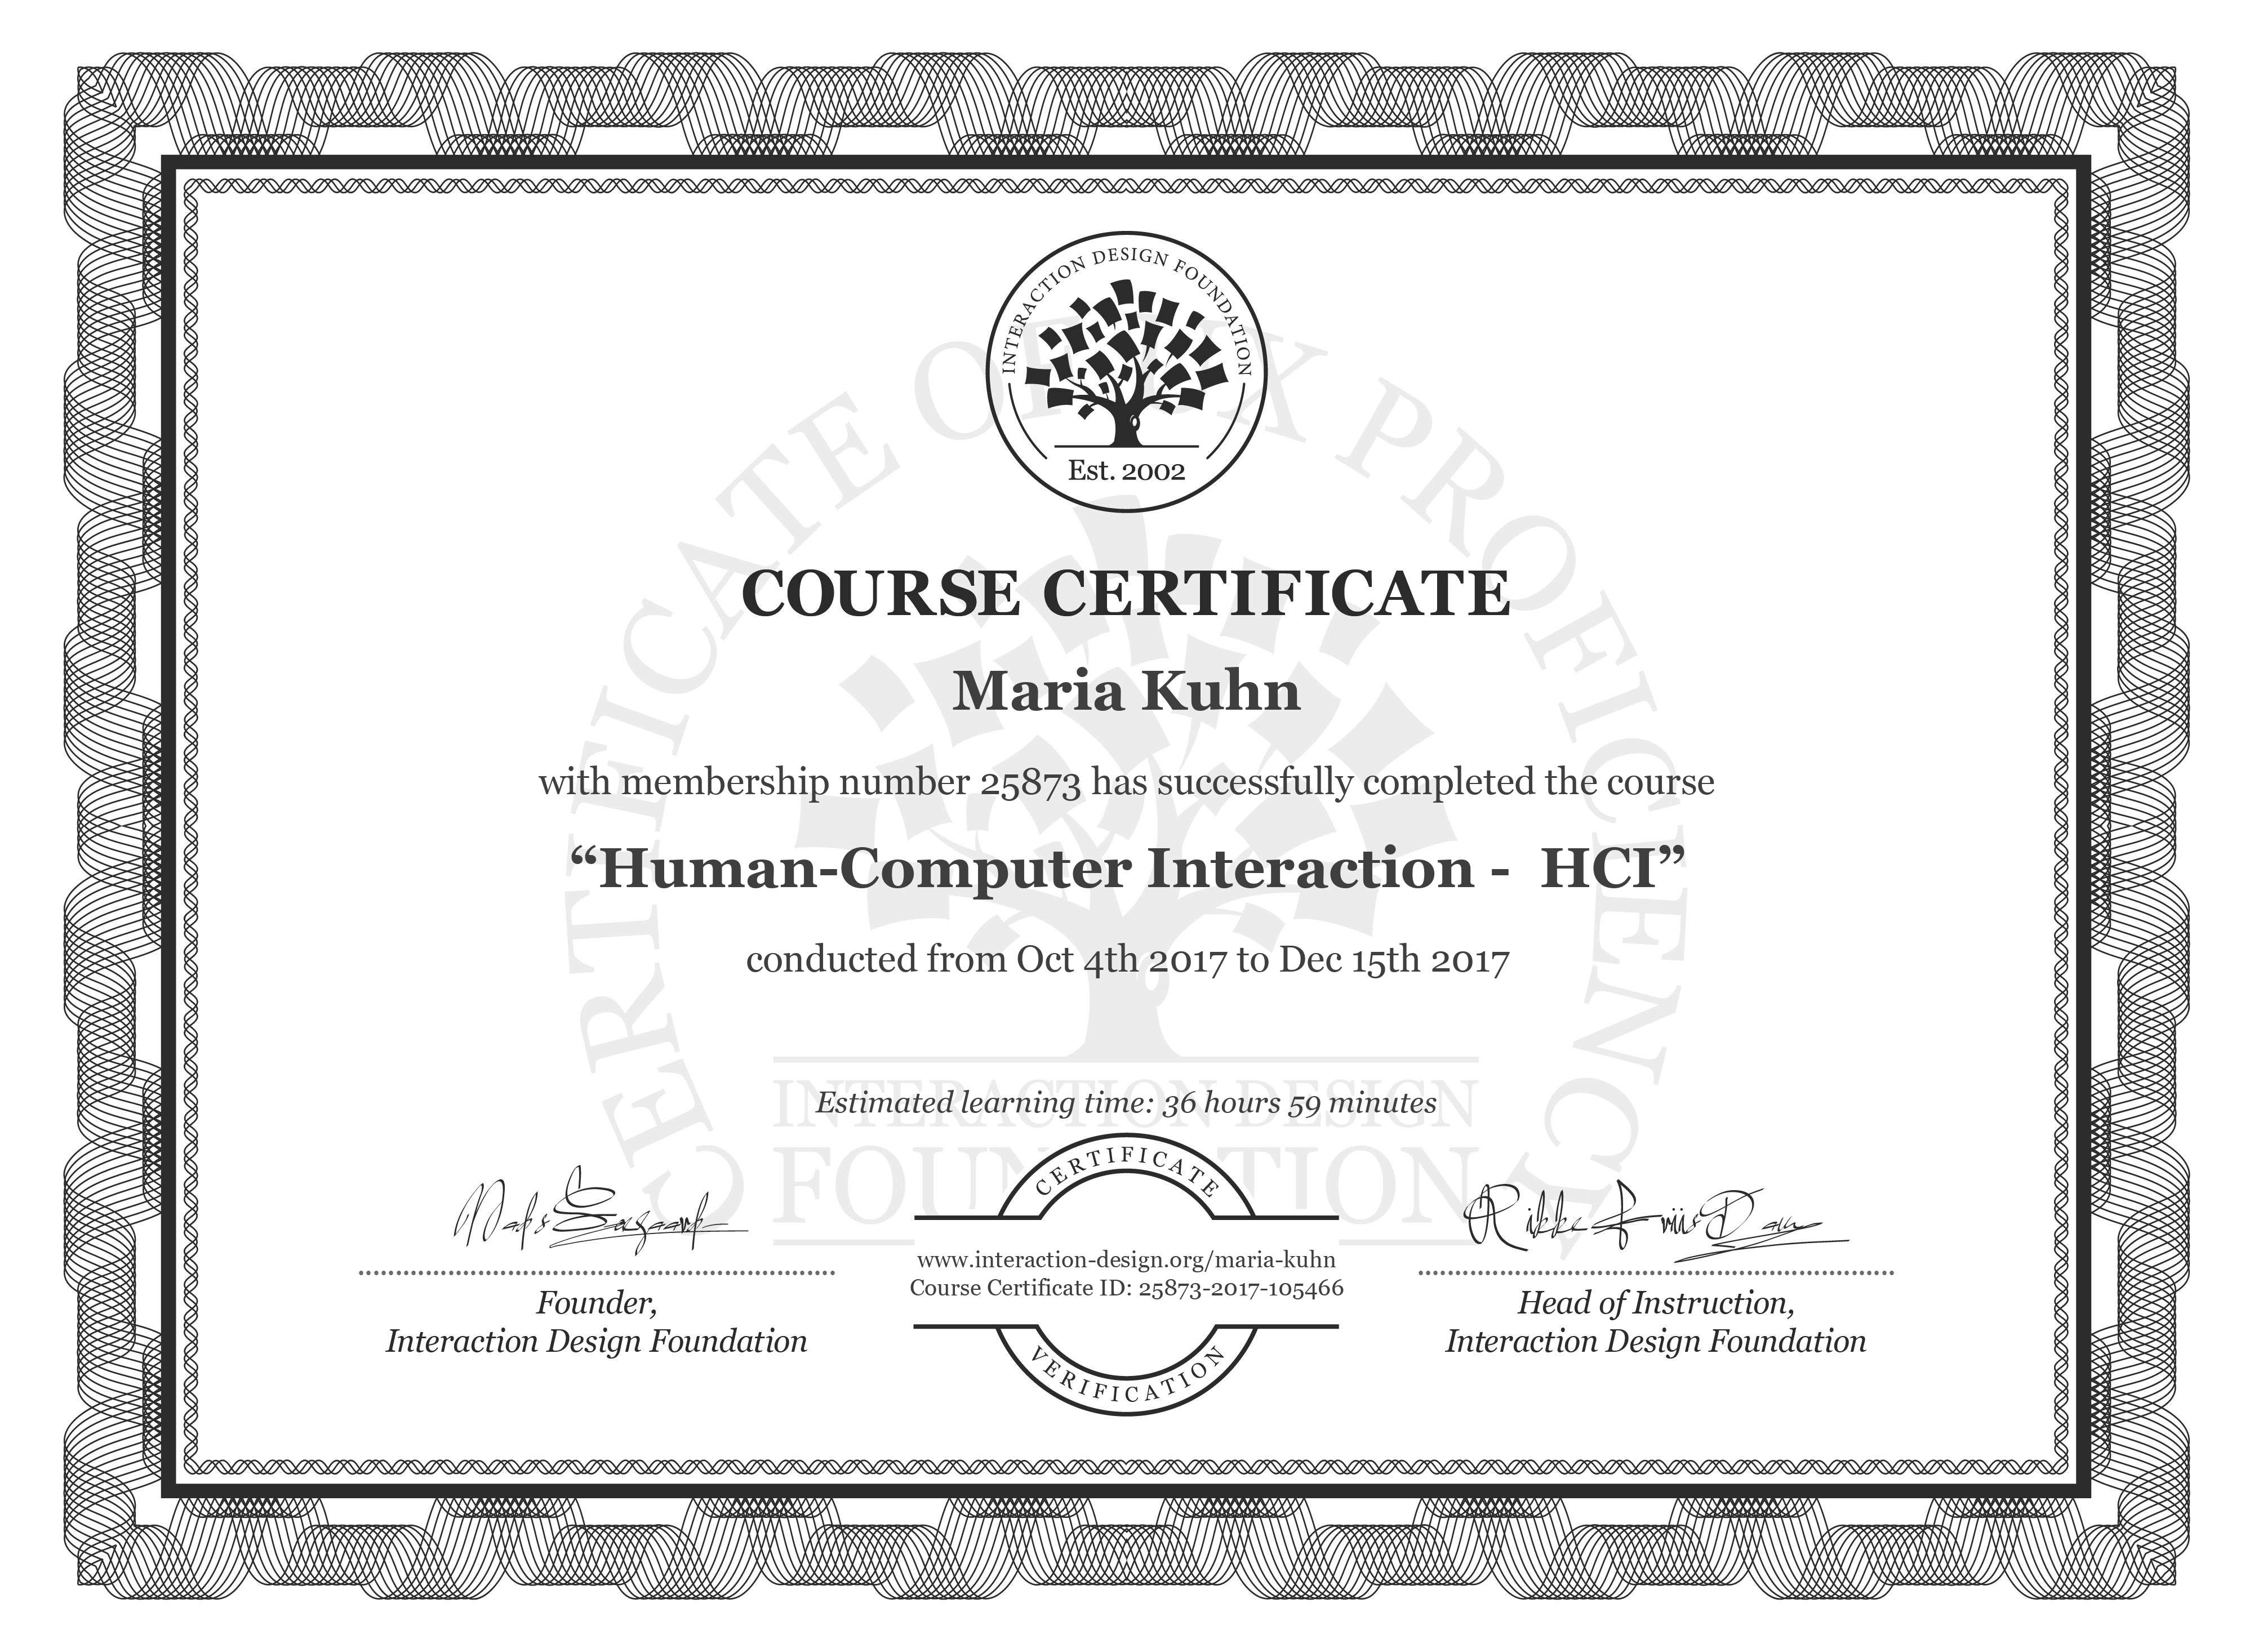 Maria Kuhn: Course Certificate - Human-Computer Interaction -  HCI